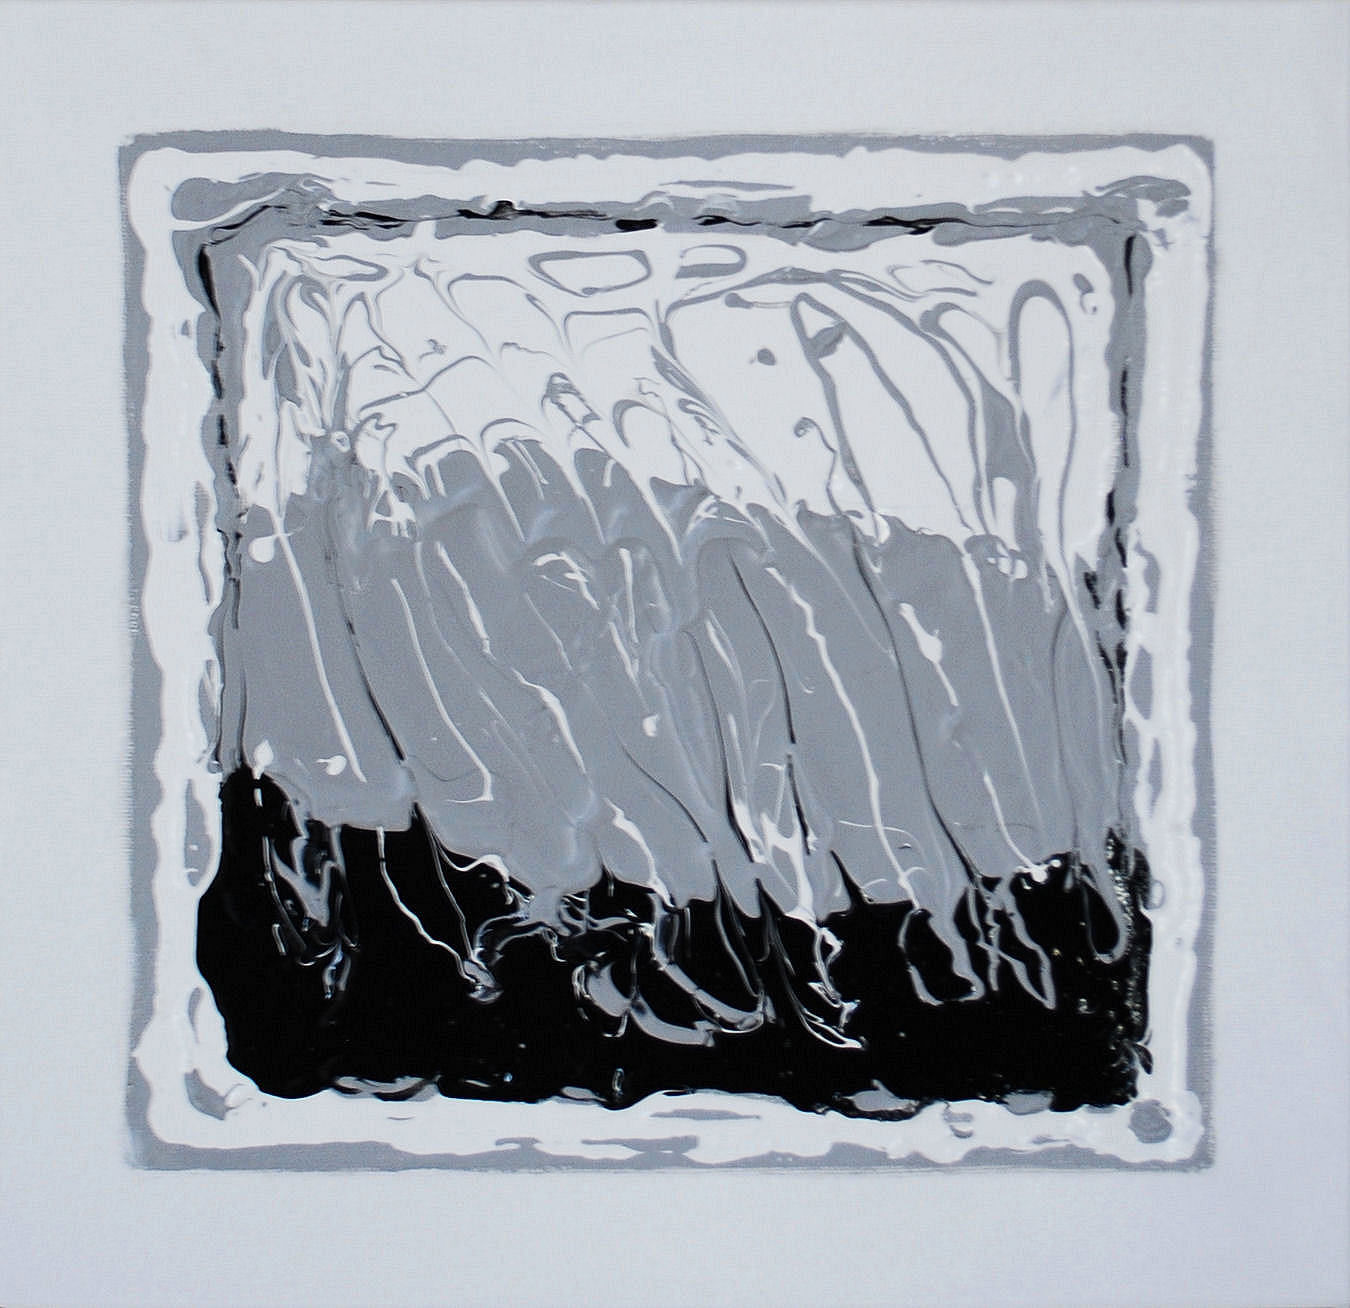 MARKINGS & IMMERSIONS I, 12x12x1.5d